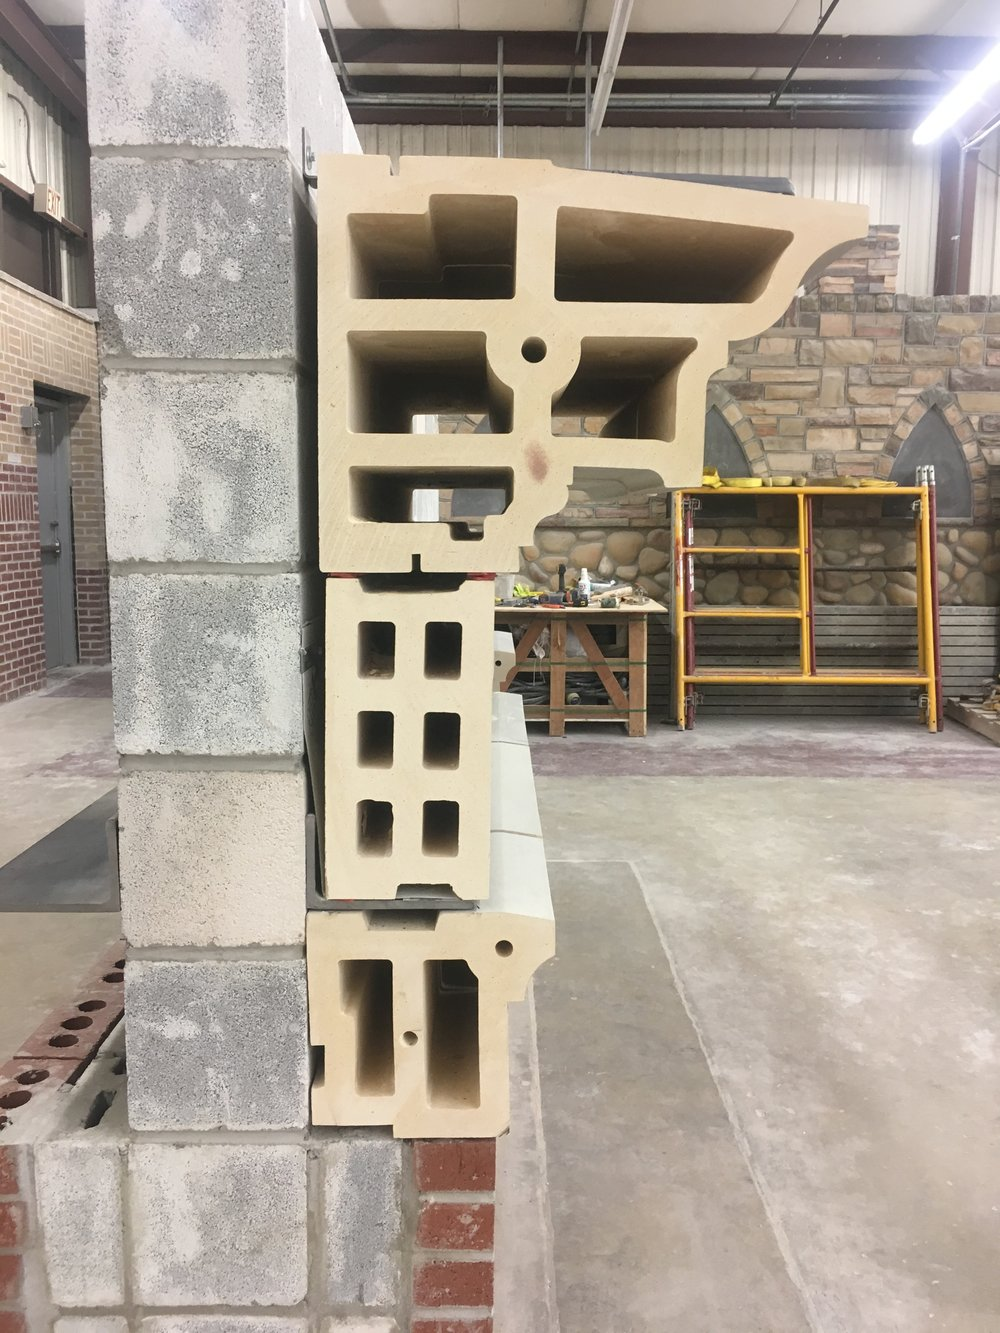 A model cornice assembly constructed from extruded terra cotta blocks.